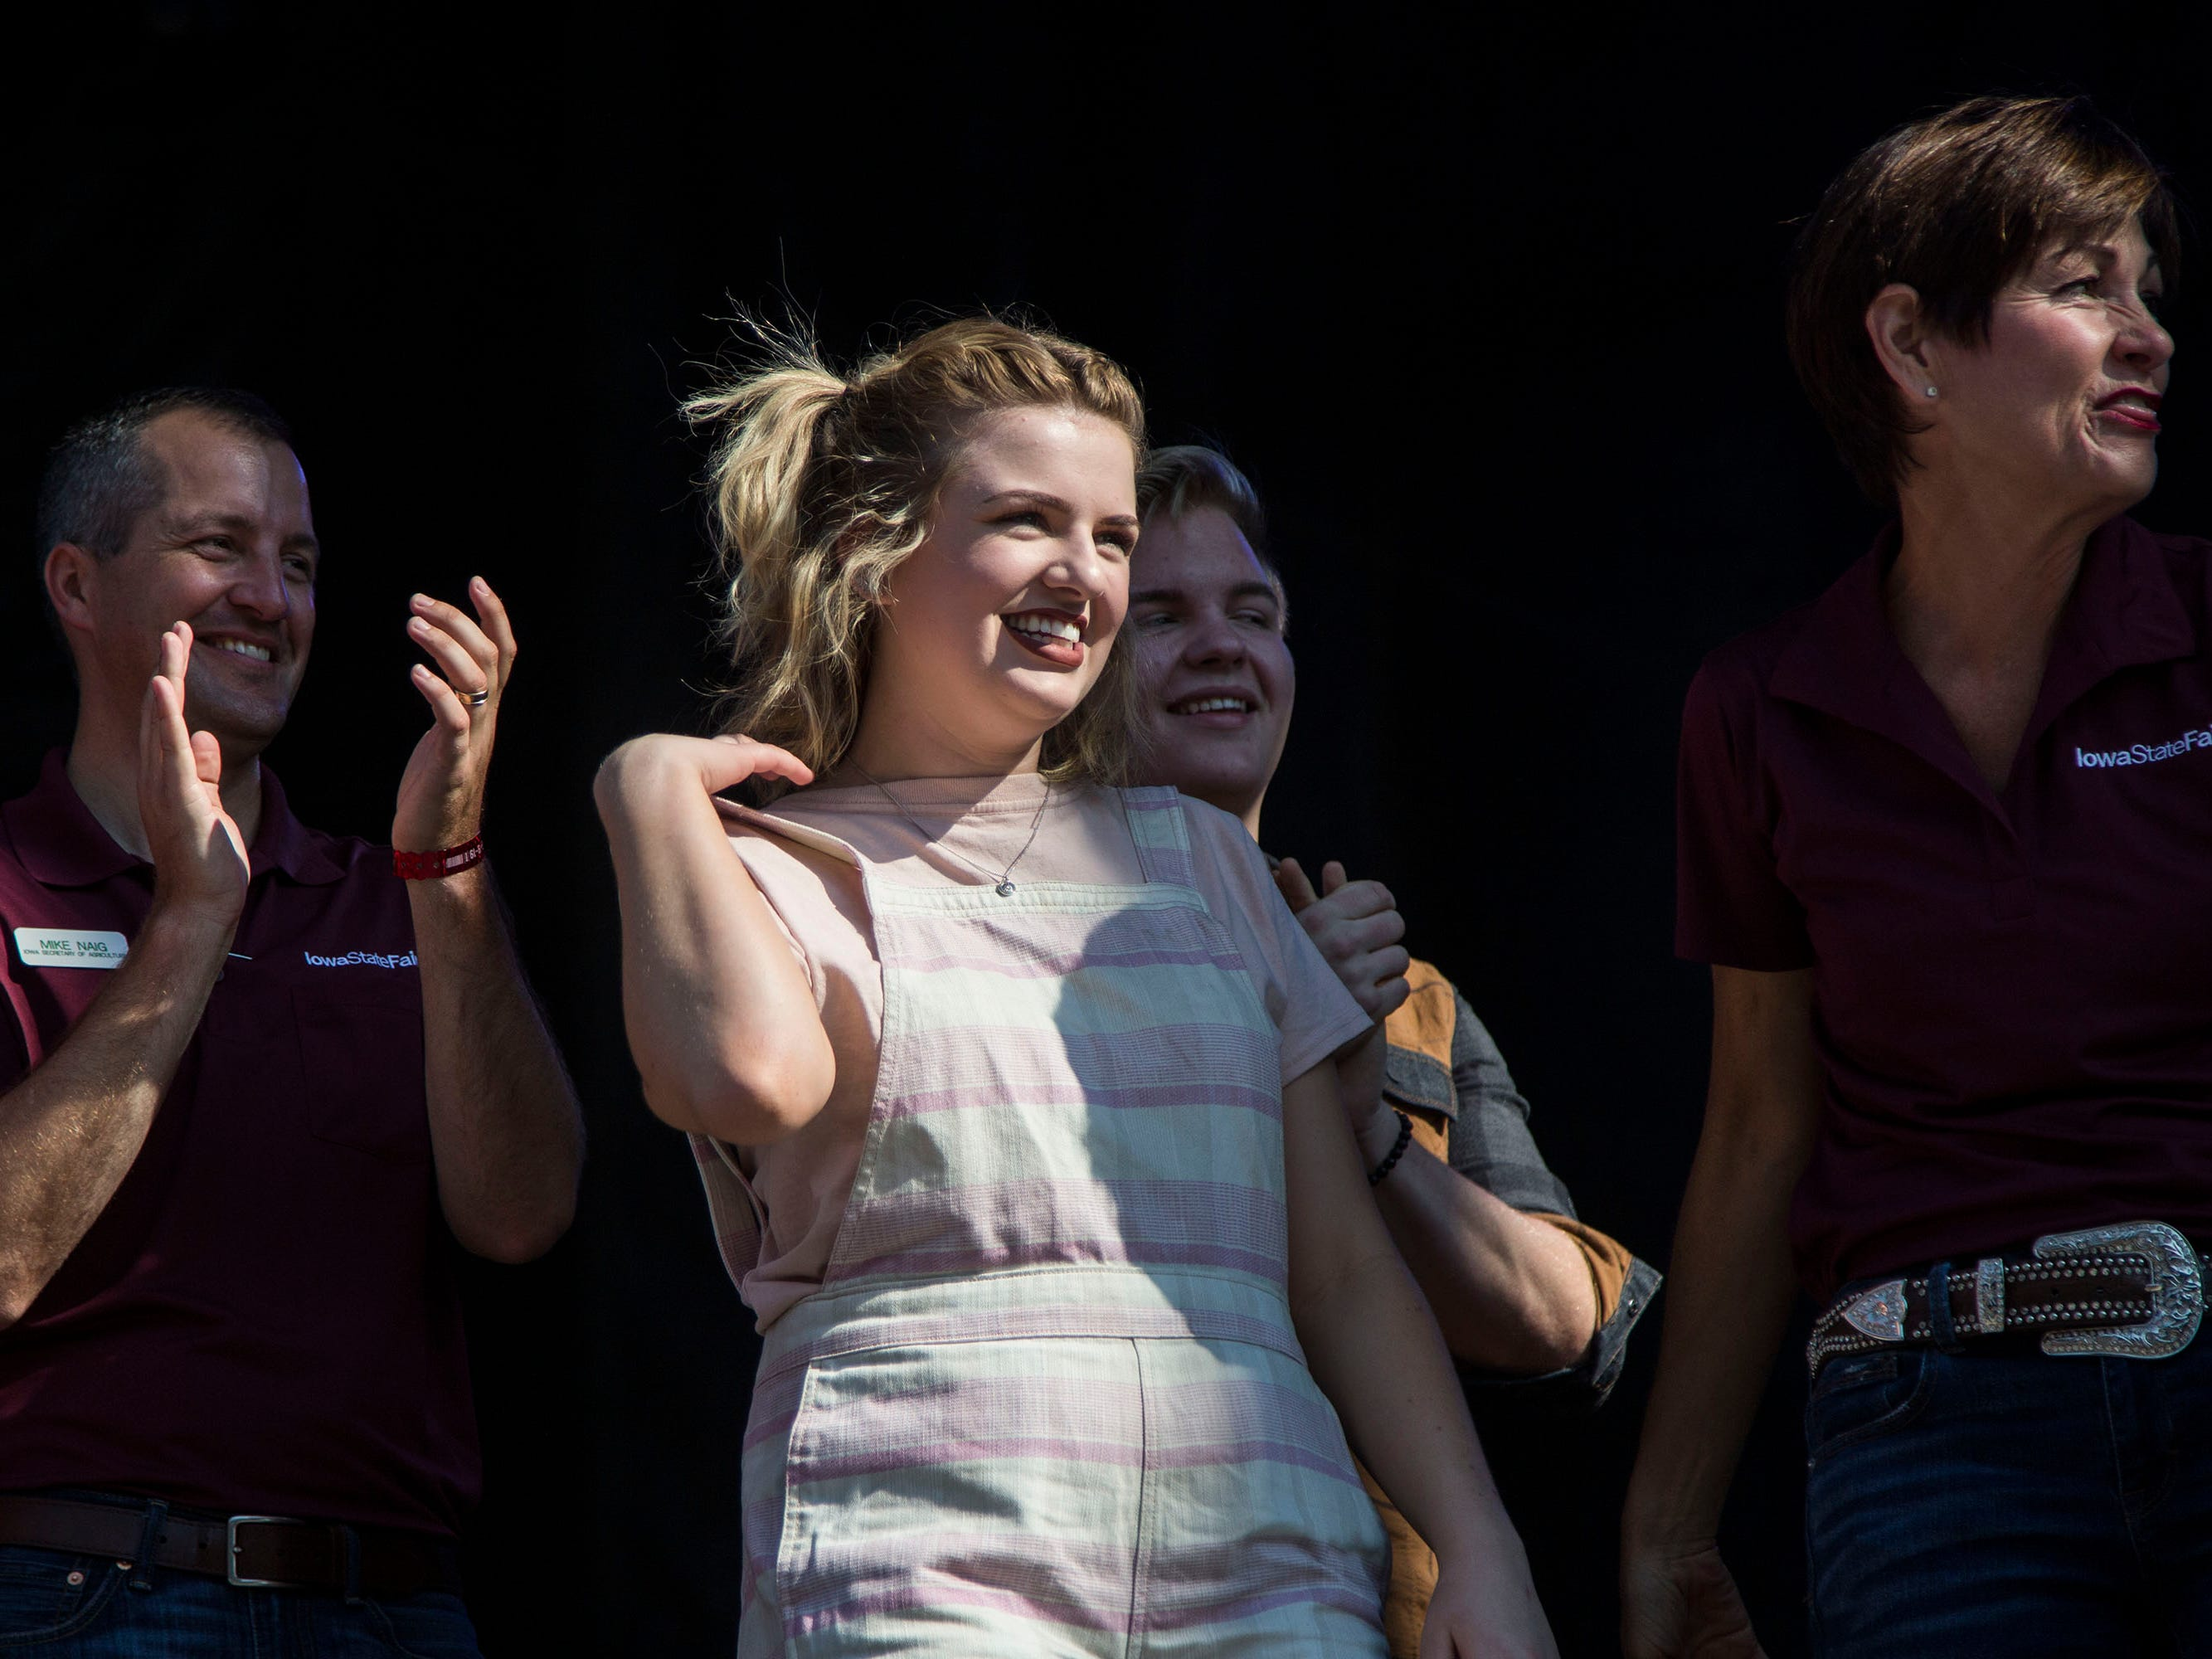 Maddie Poppe, winner of season 16 of American Idol and Iowa native, stands on stage with Iowa Governor Kim Reynolds during the opening ceremonies for the Iowa State Fair on Thursday, August 9, 2018, in Des Moines.